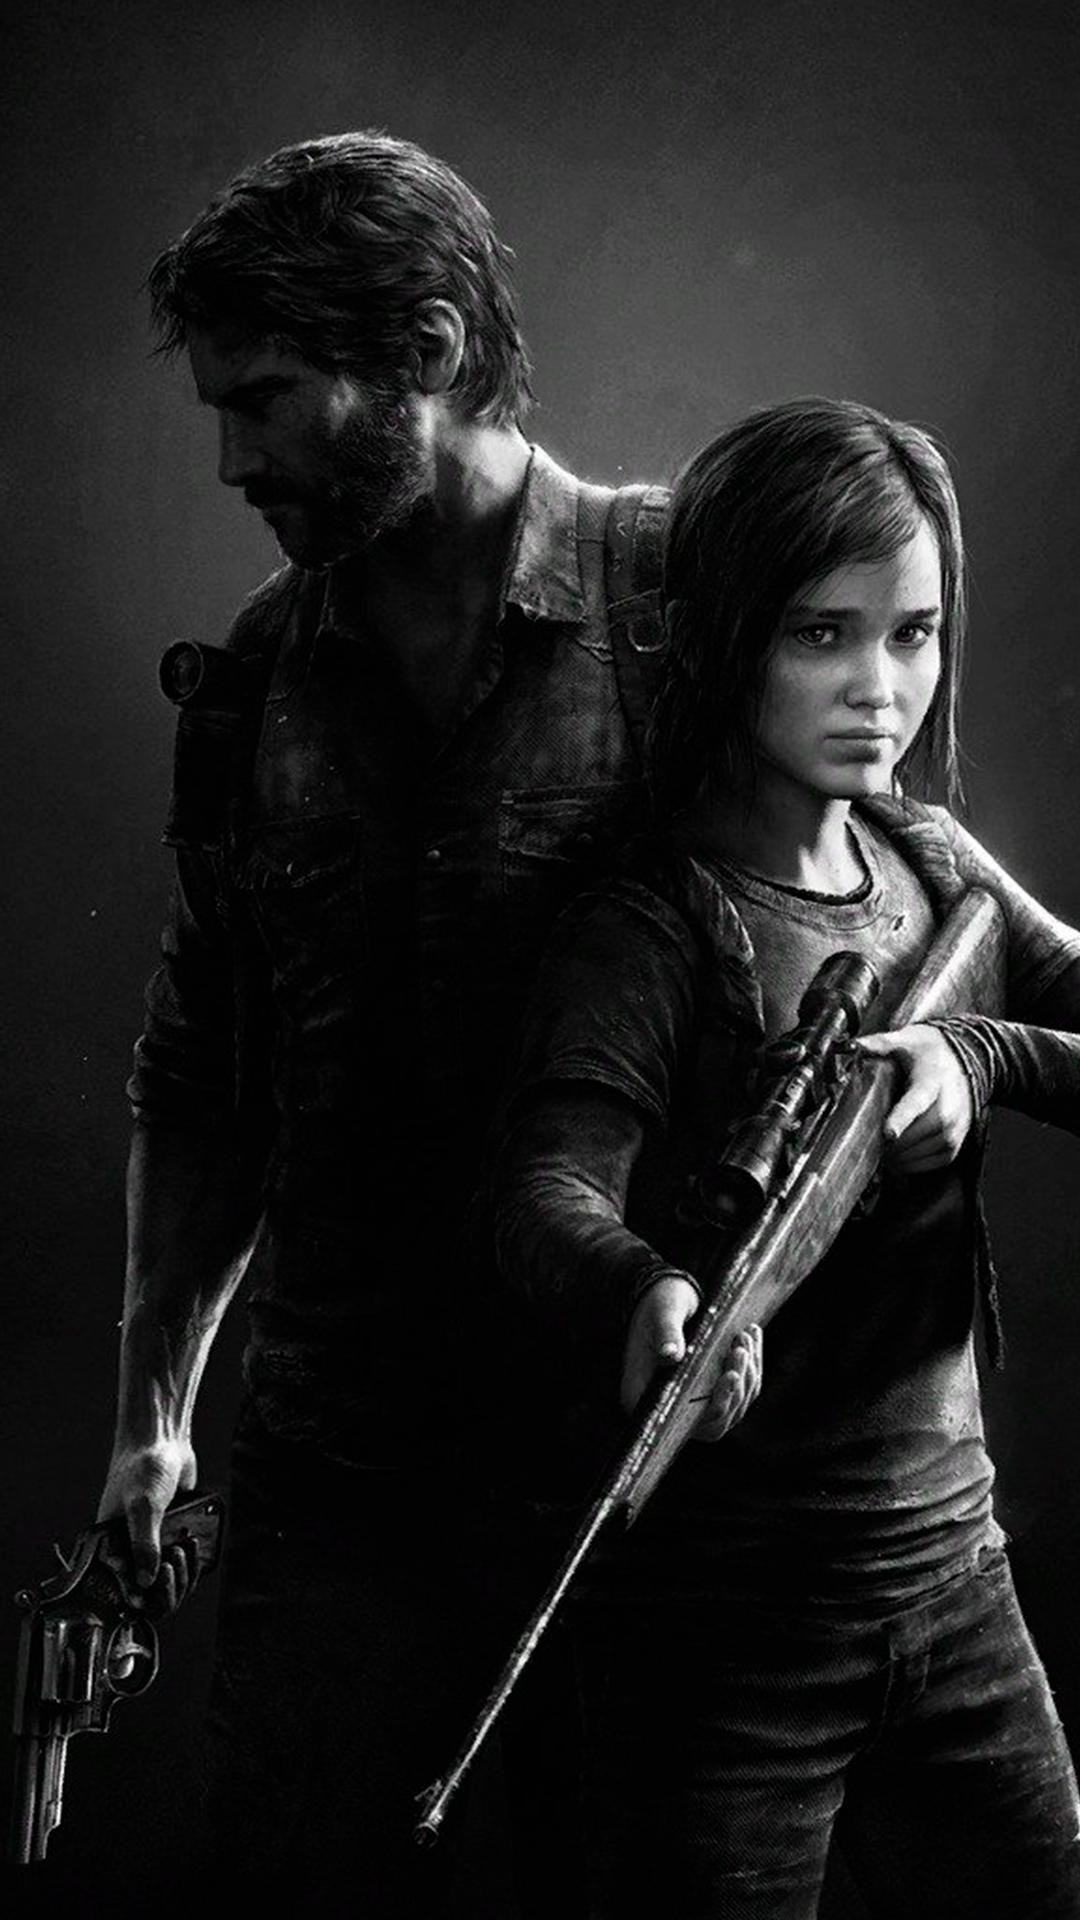 The Last Of Us hd wallpaper for iphone